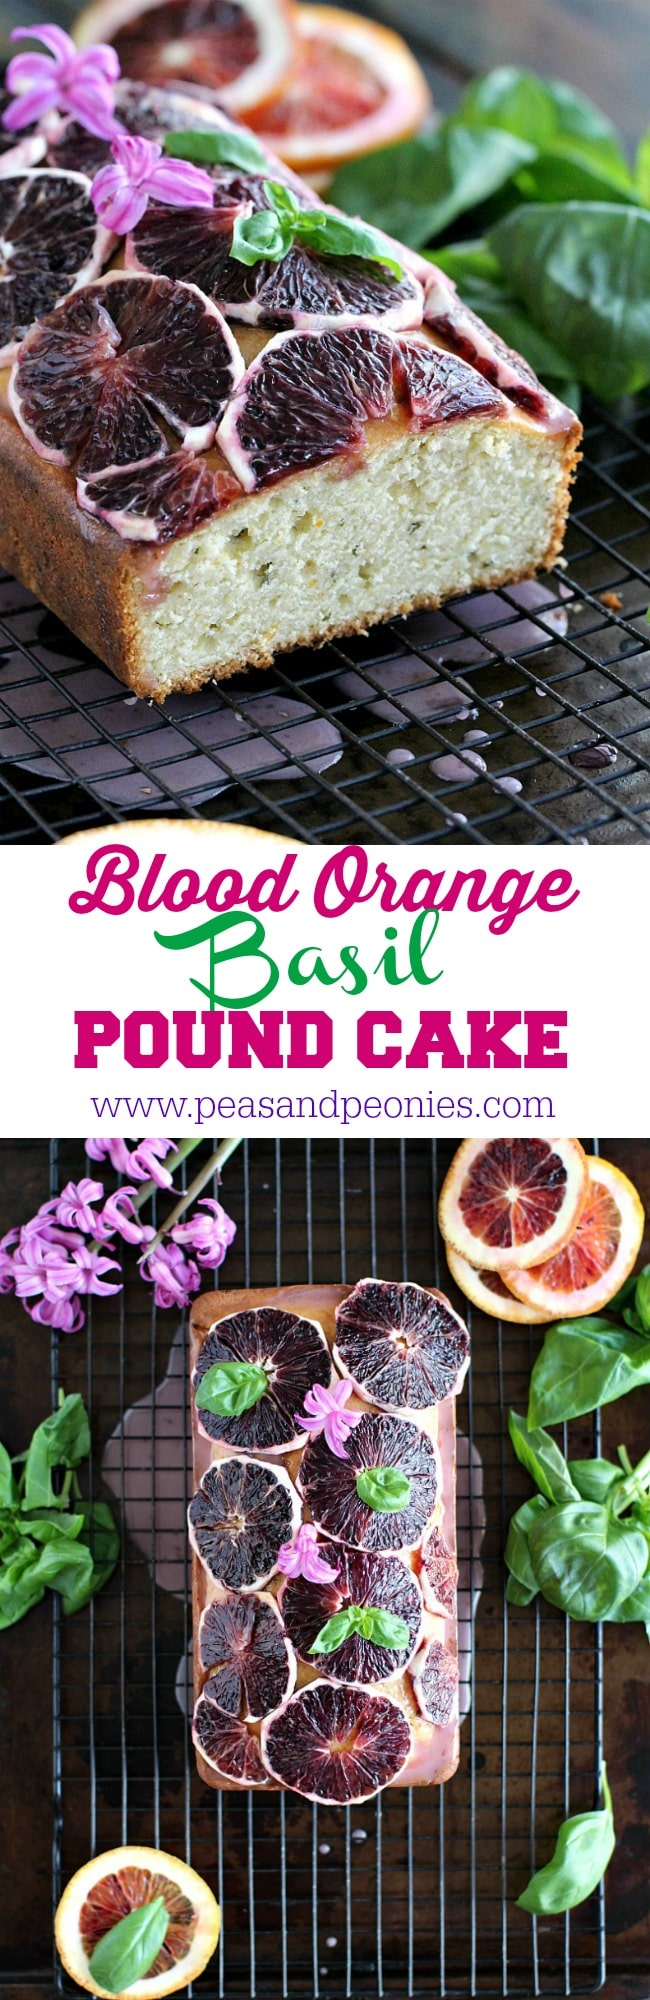 Basil Blood Orange Pound Cake PIN